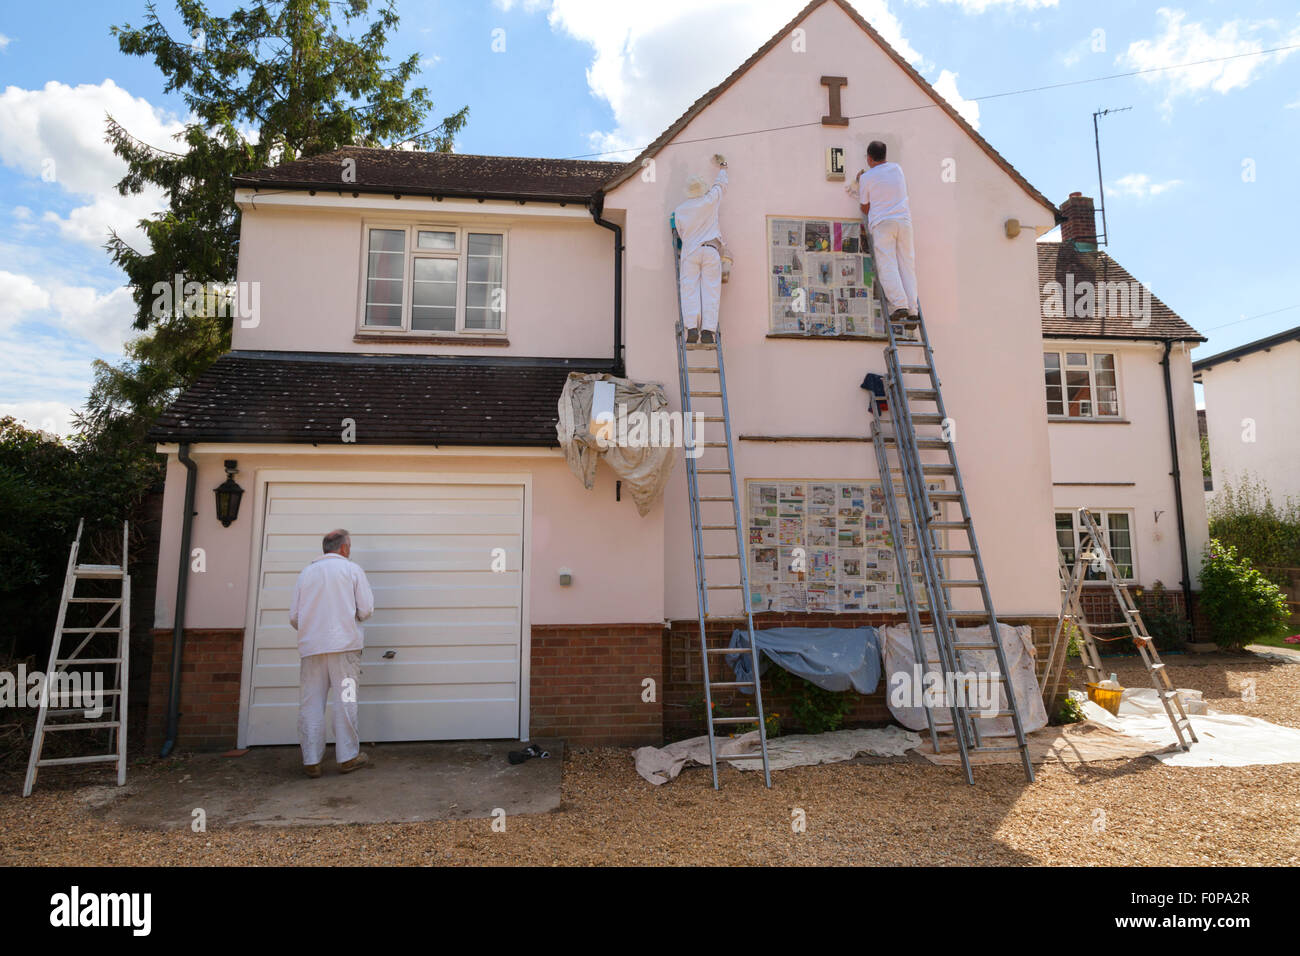 professional-house-painters-painting-the